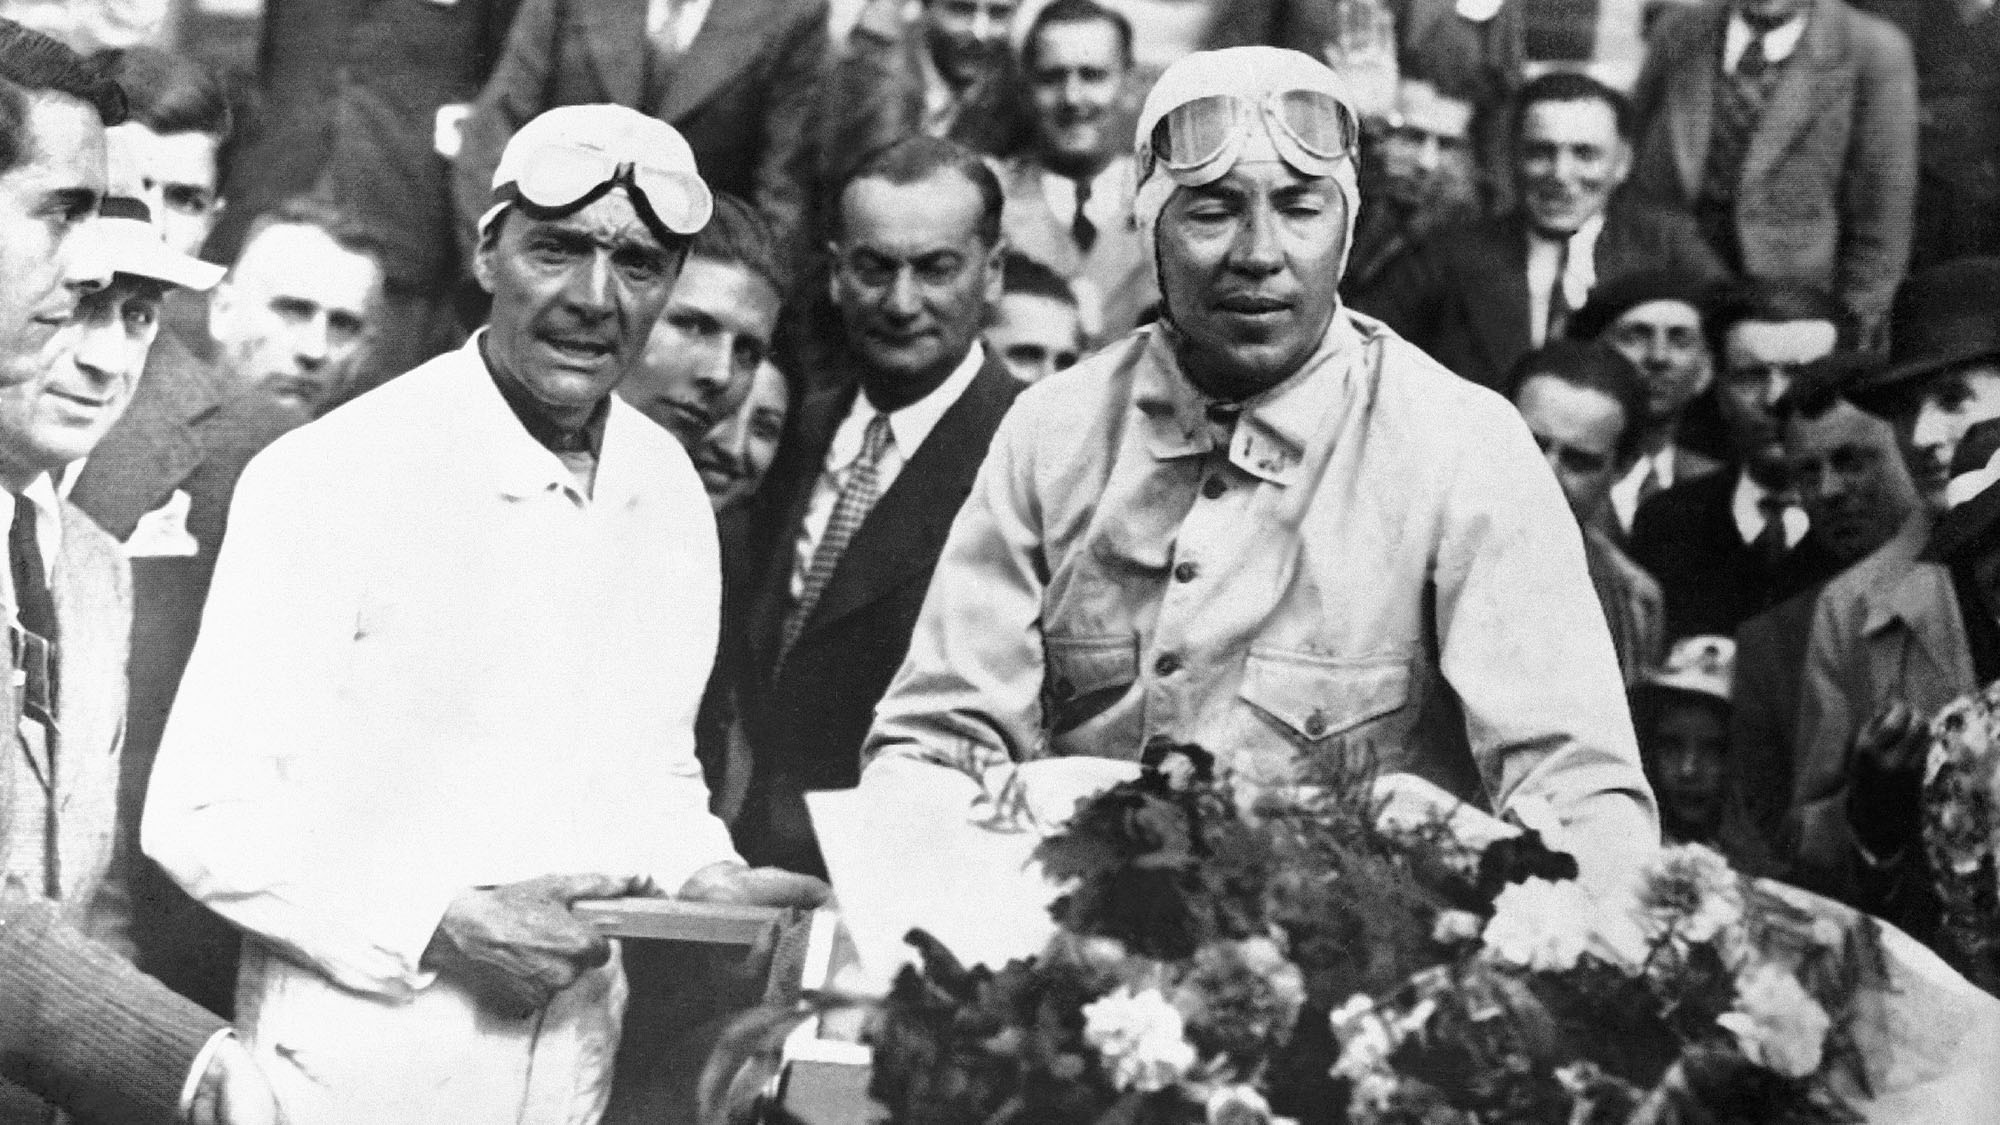 FRANCE - JANUARY 18: The racing drivers Robert BENOIST and Jean-Pierre WIMILLE receive flowers for their victory at the 24h of Le Mans, on June 20, 1937. (Photo by Keystone-France/Gamma-Keystone via Getty Images)